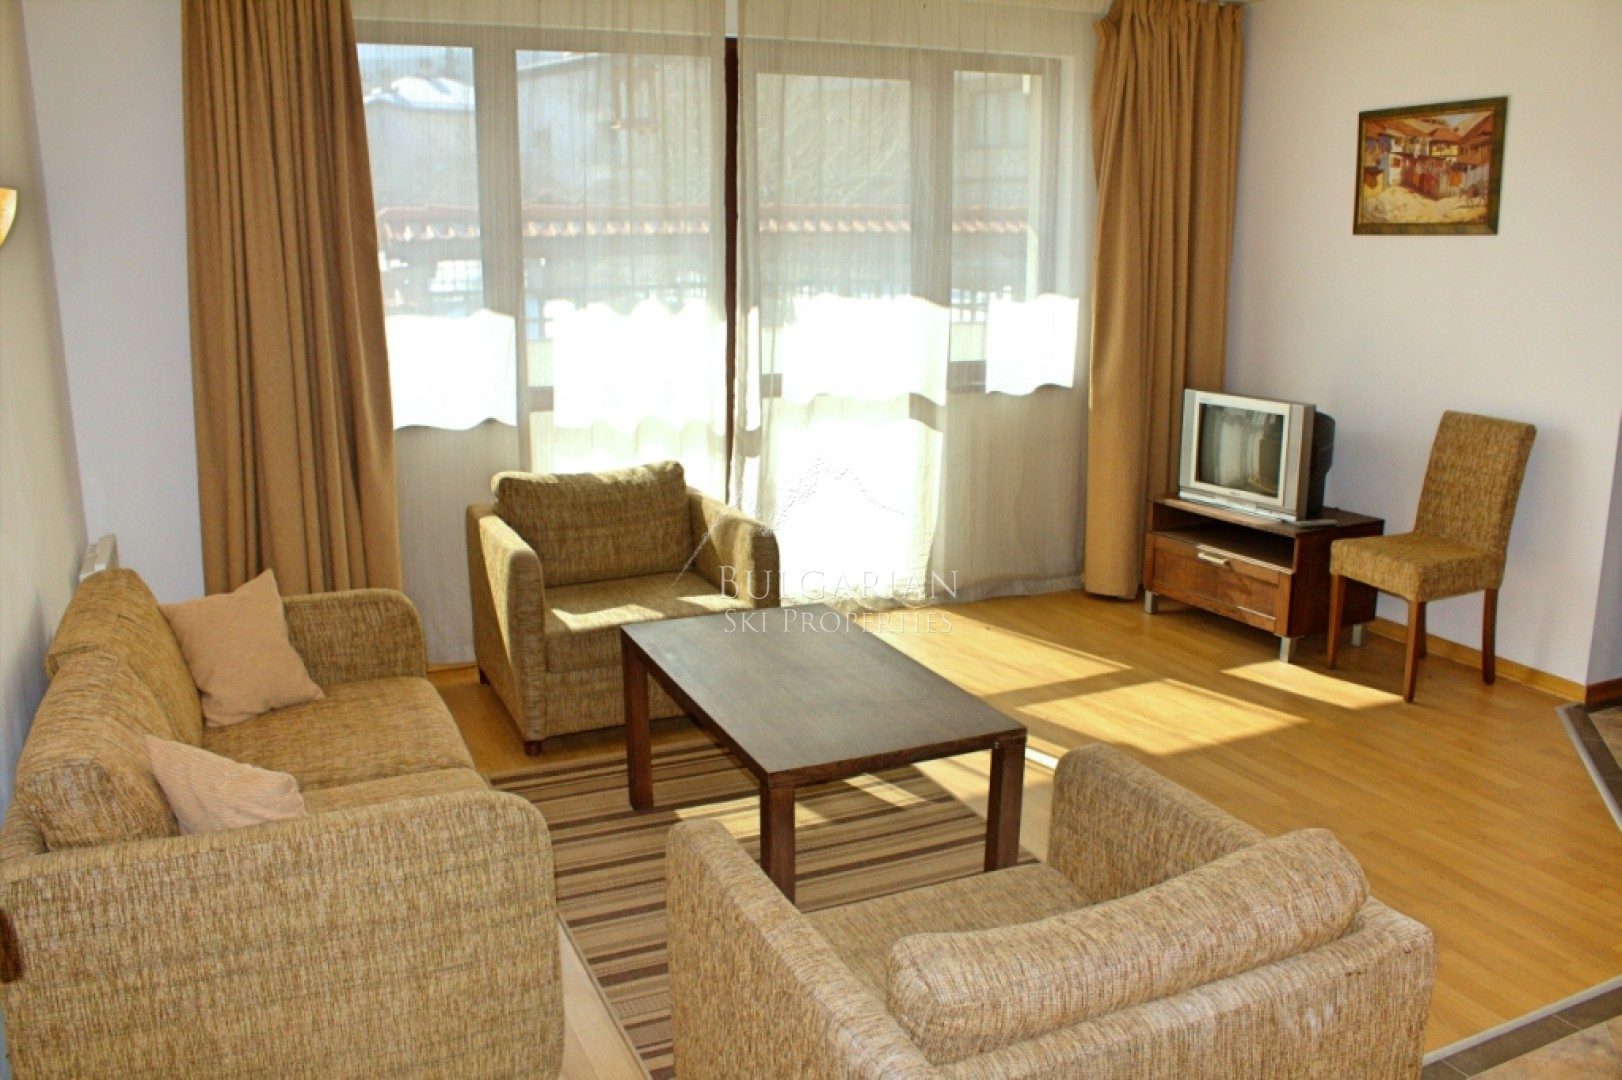 Bansko, Winslow Elegance: spacious one bedroom apartment for sale